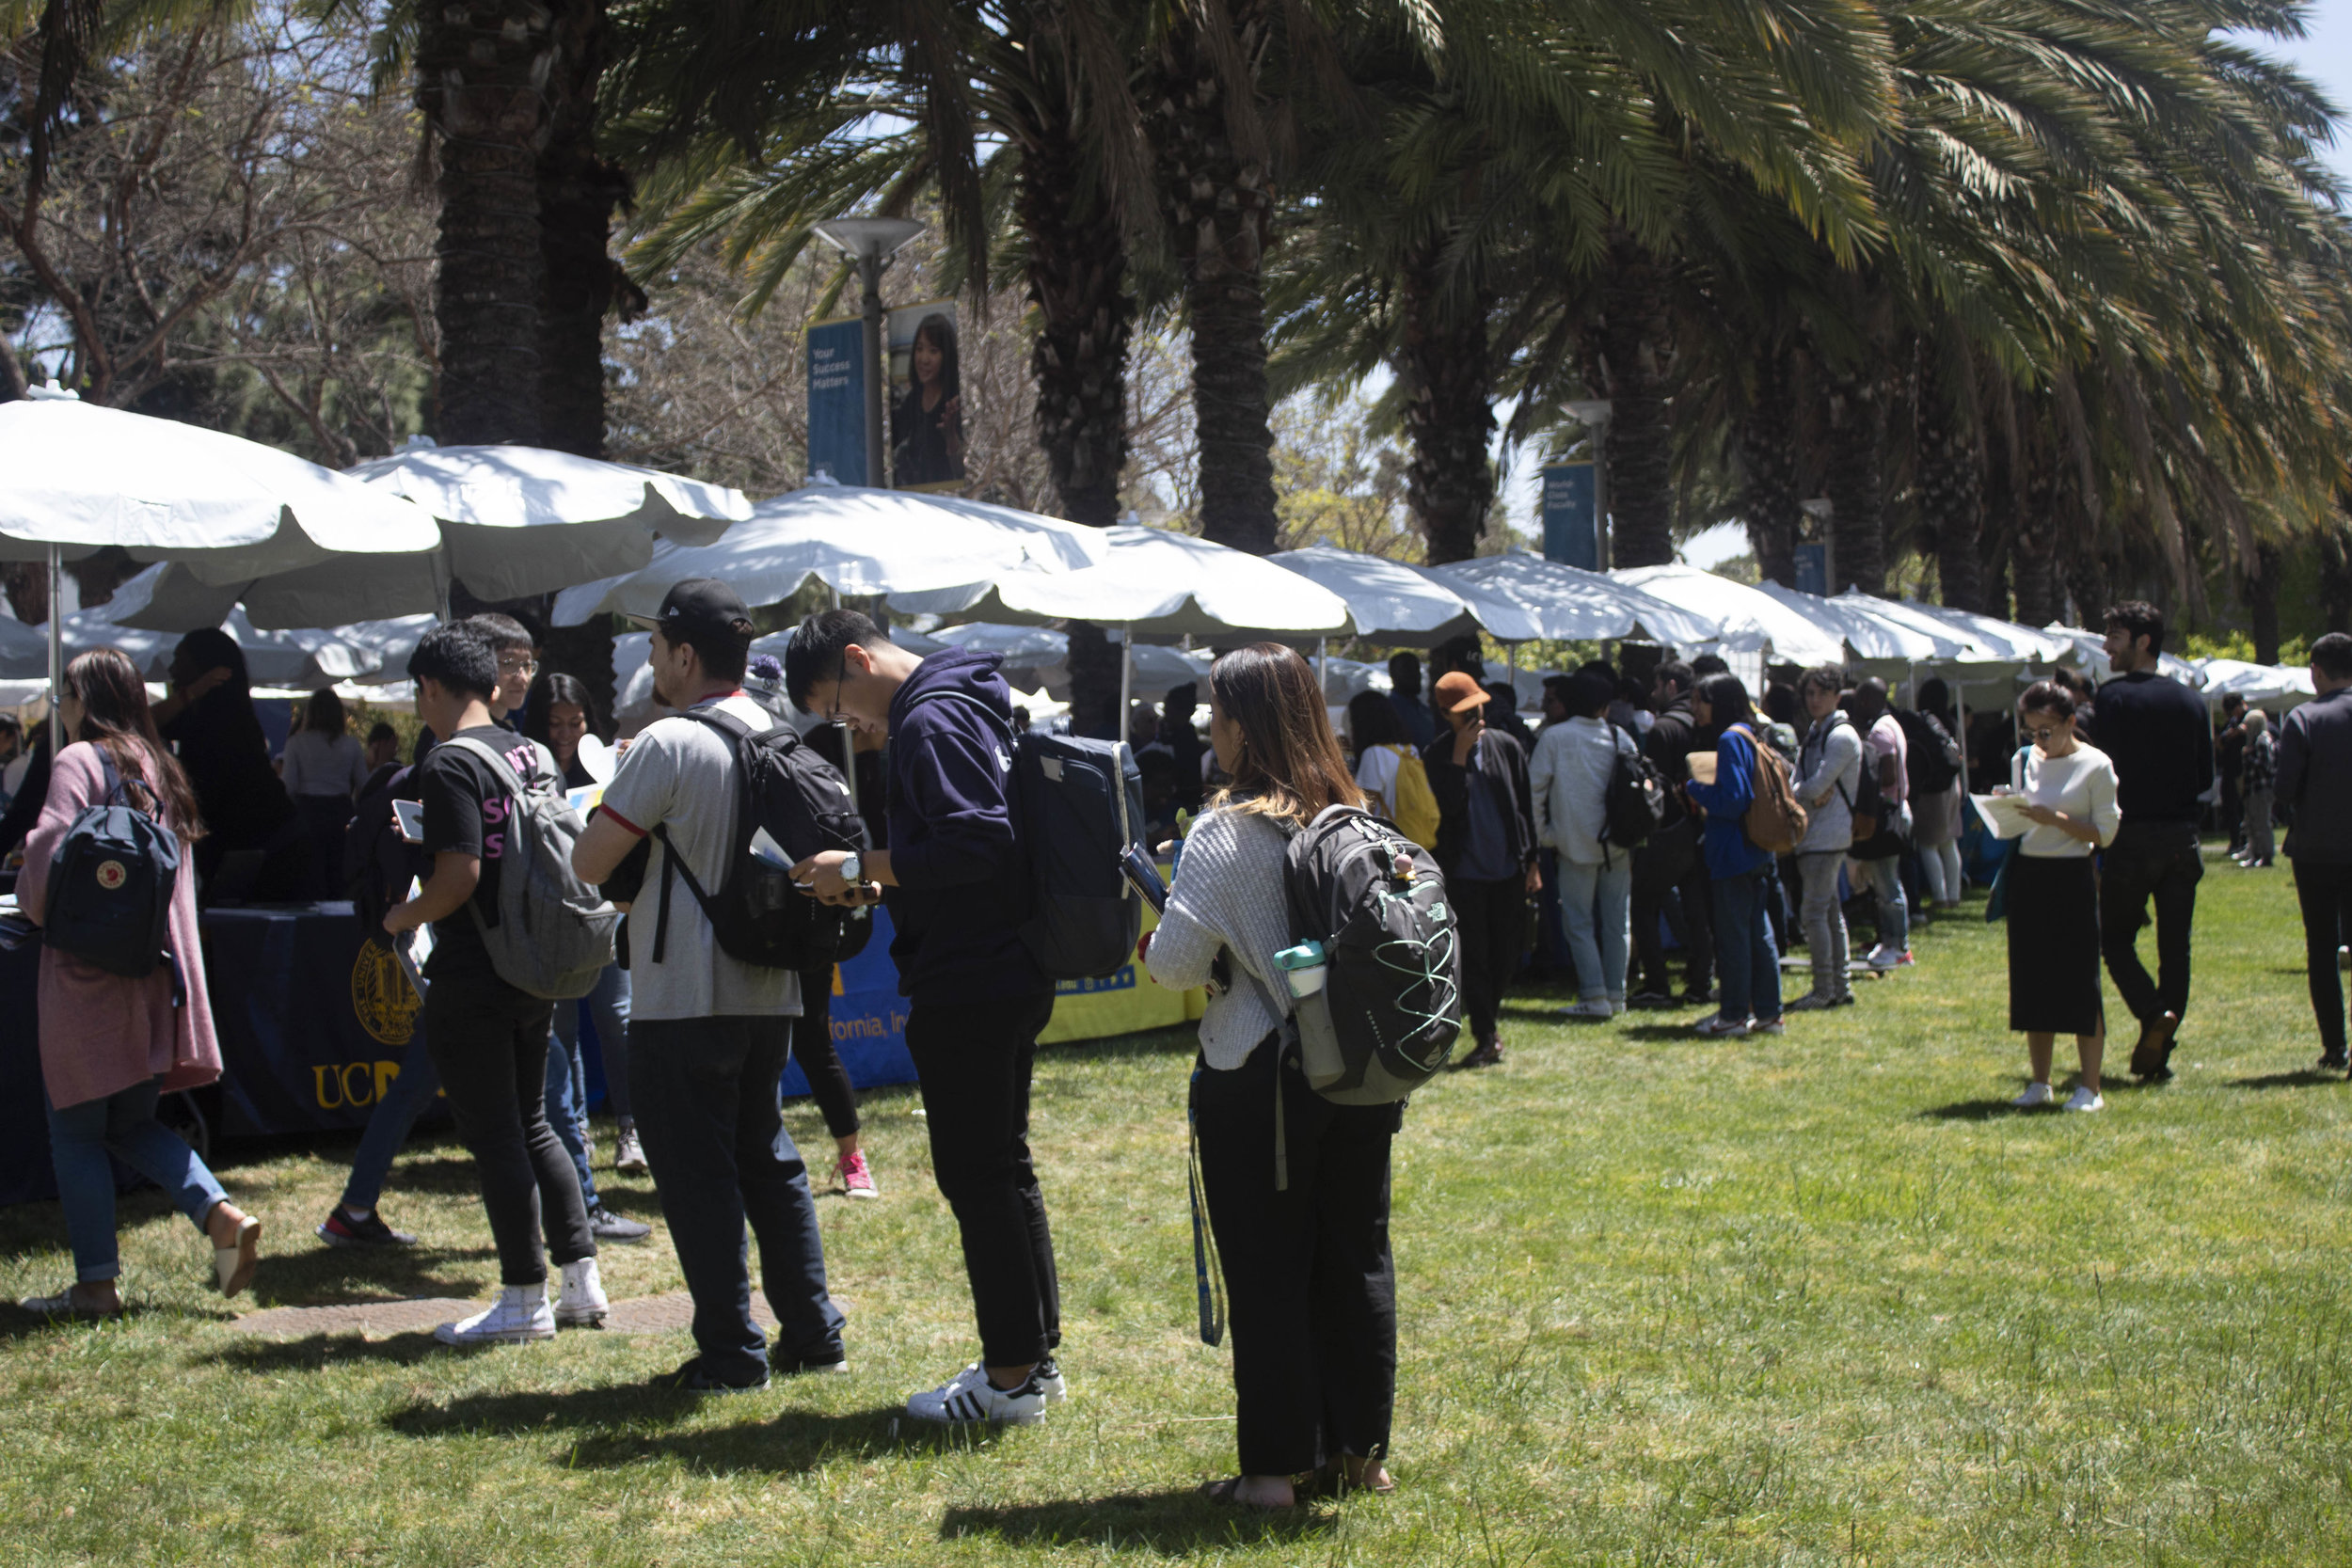 Students of Santa Monica College line up for the Universities of California (UC) booths. April 23, 2019. (Pablo Eden Garcia/ The Corsair)